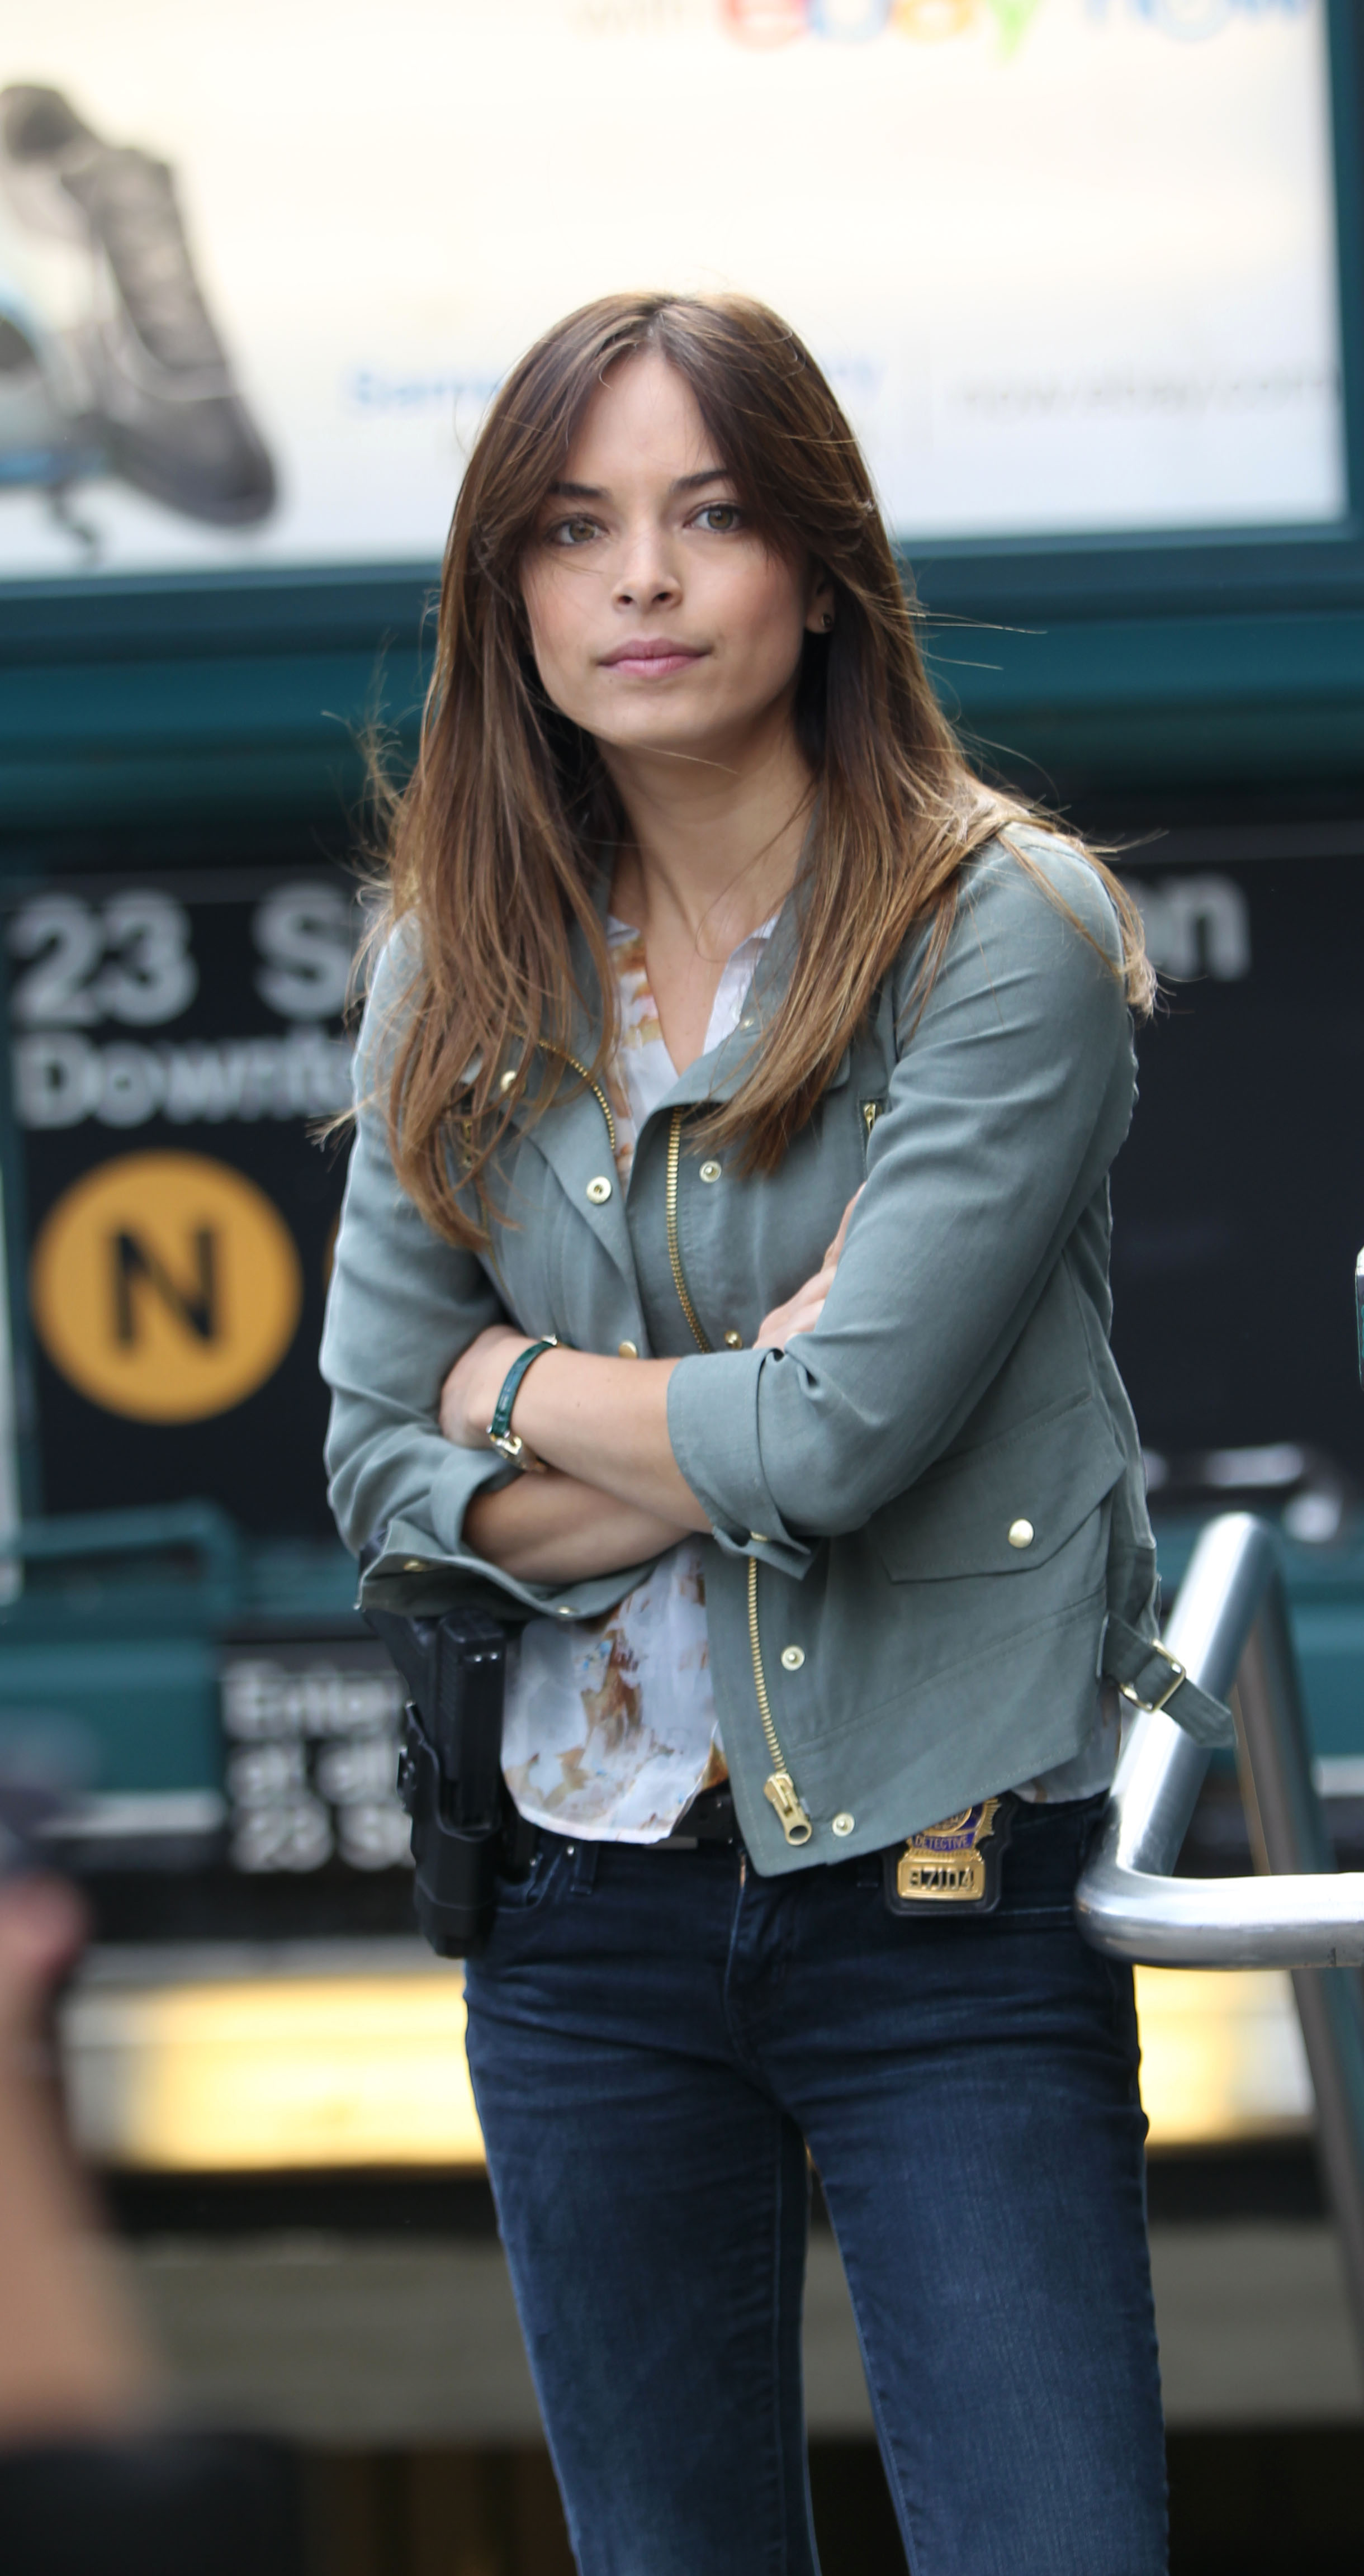 Who is Kristin Kreuk dating?